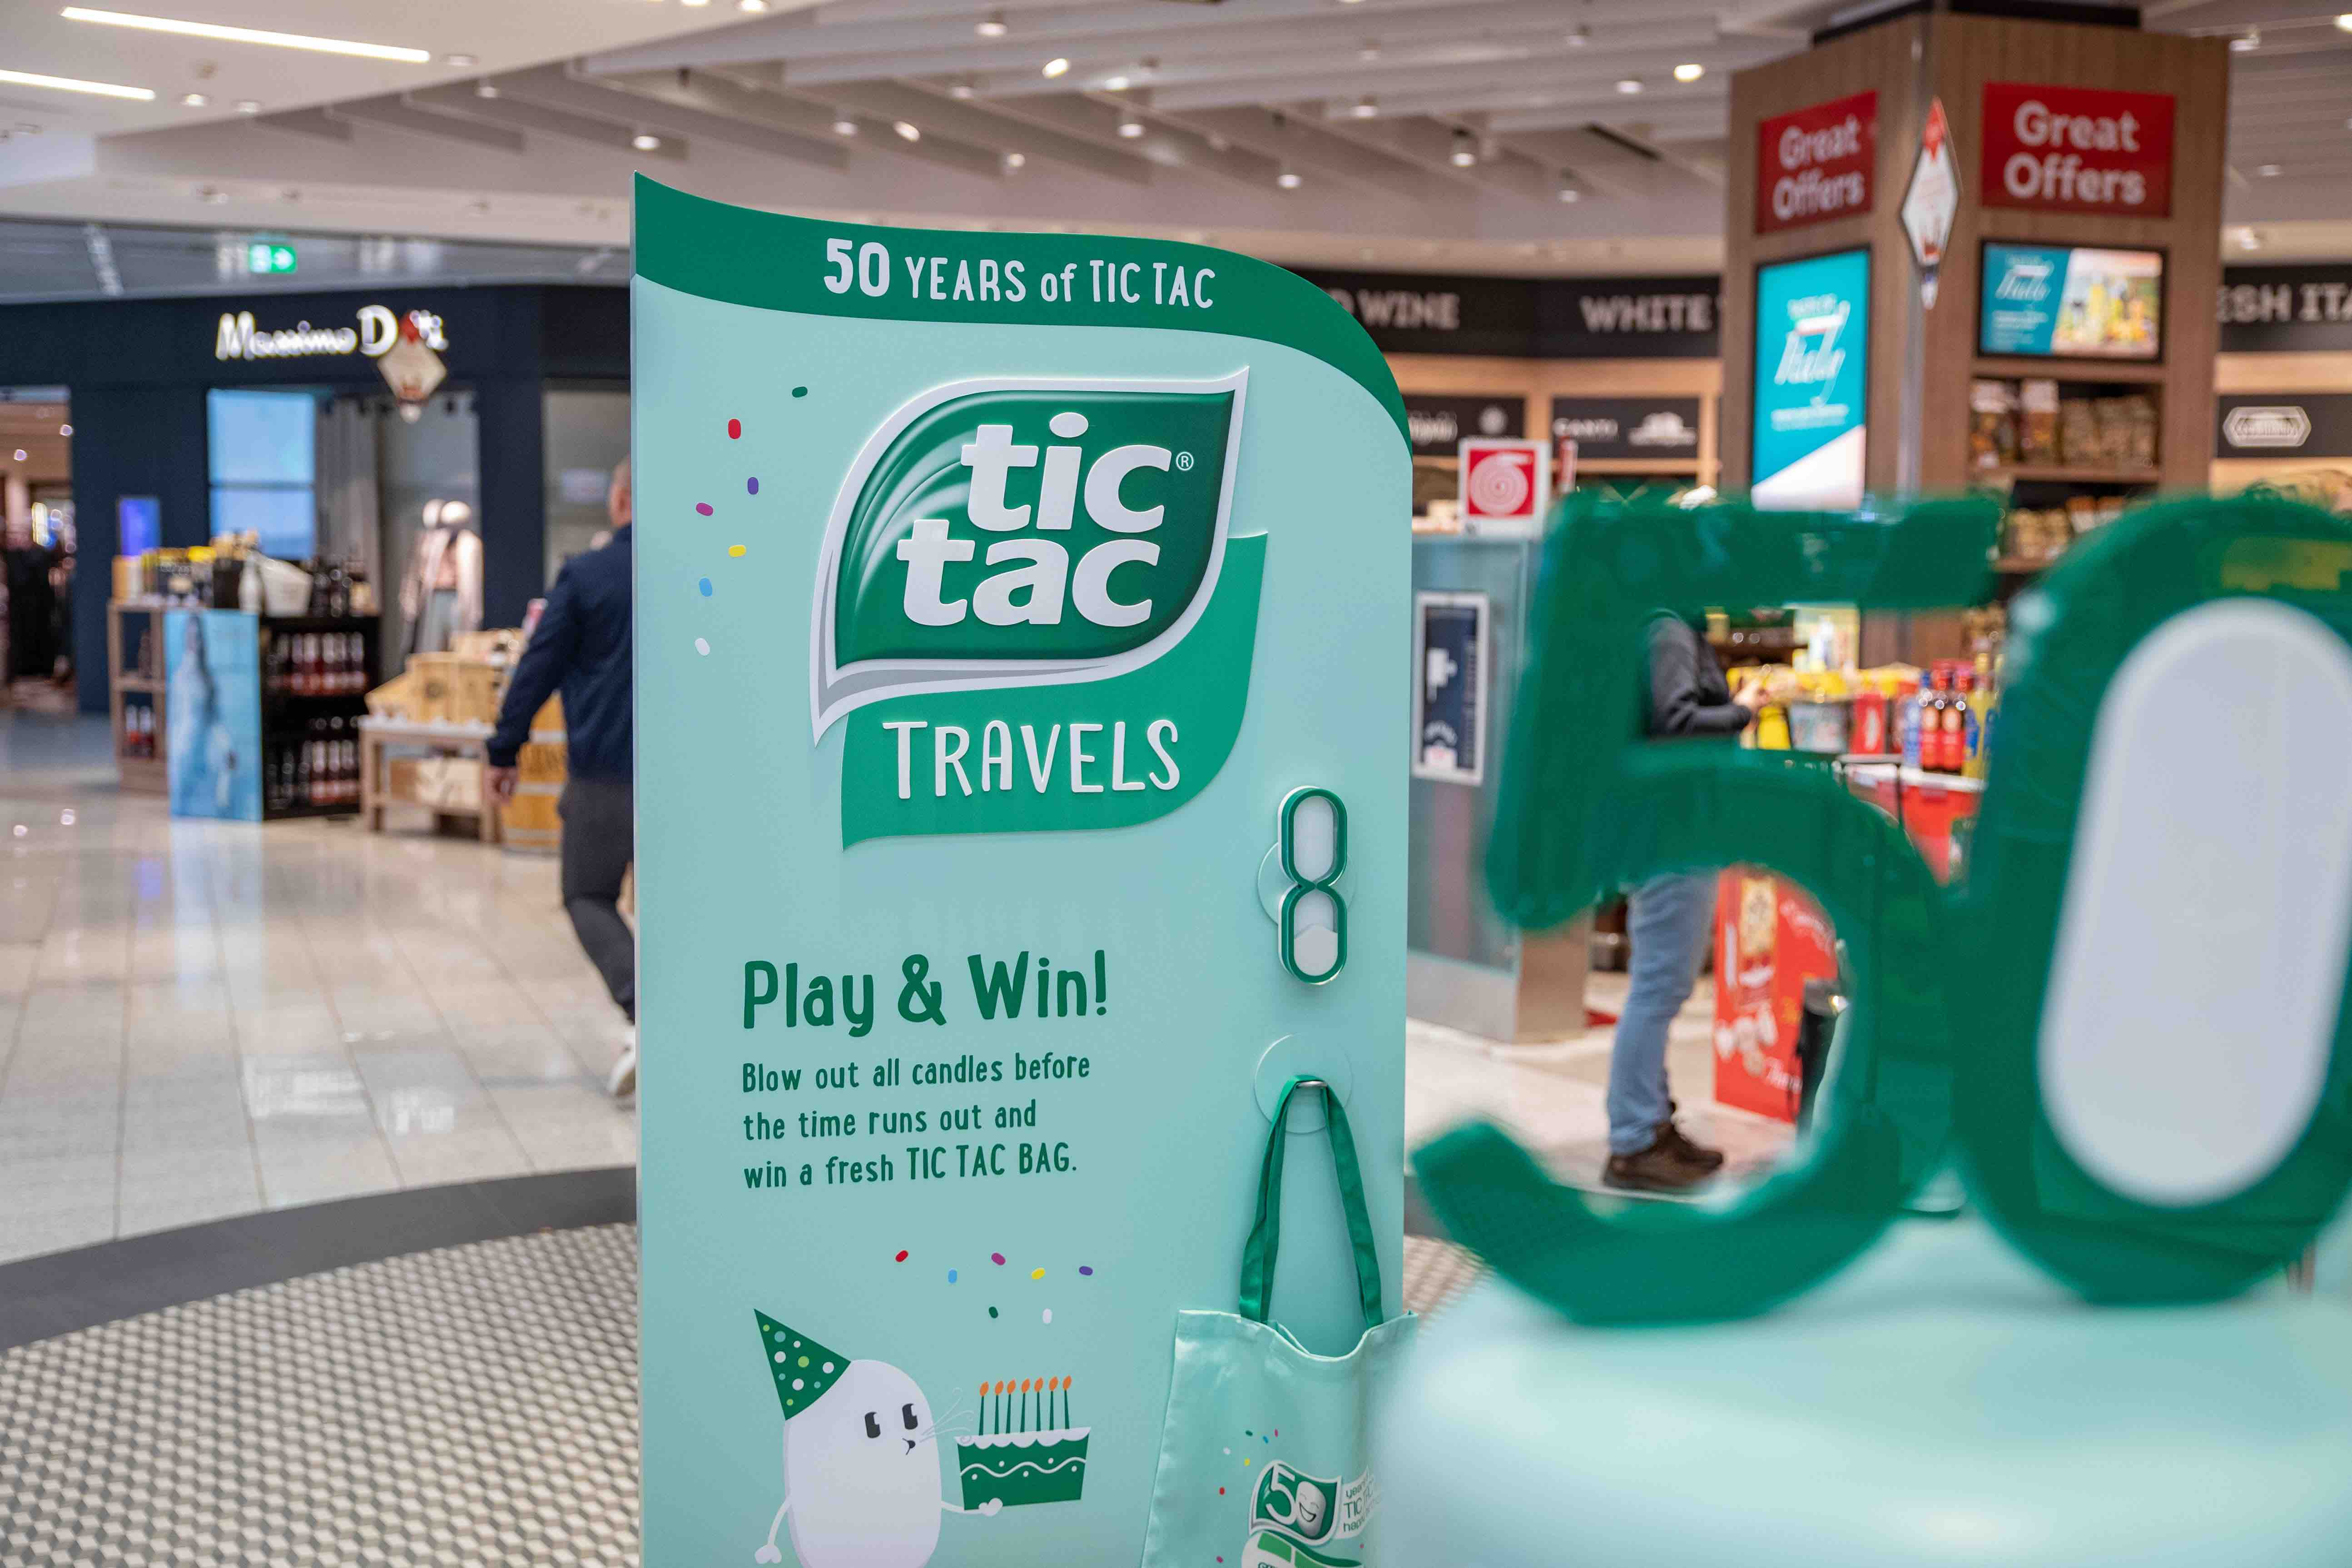 Taictac Travels 50th anniversary display